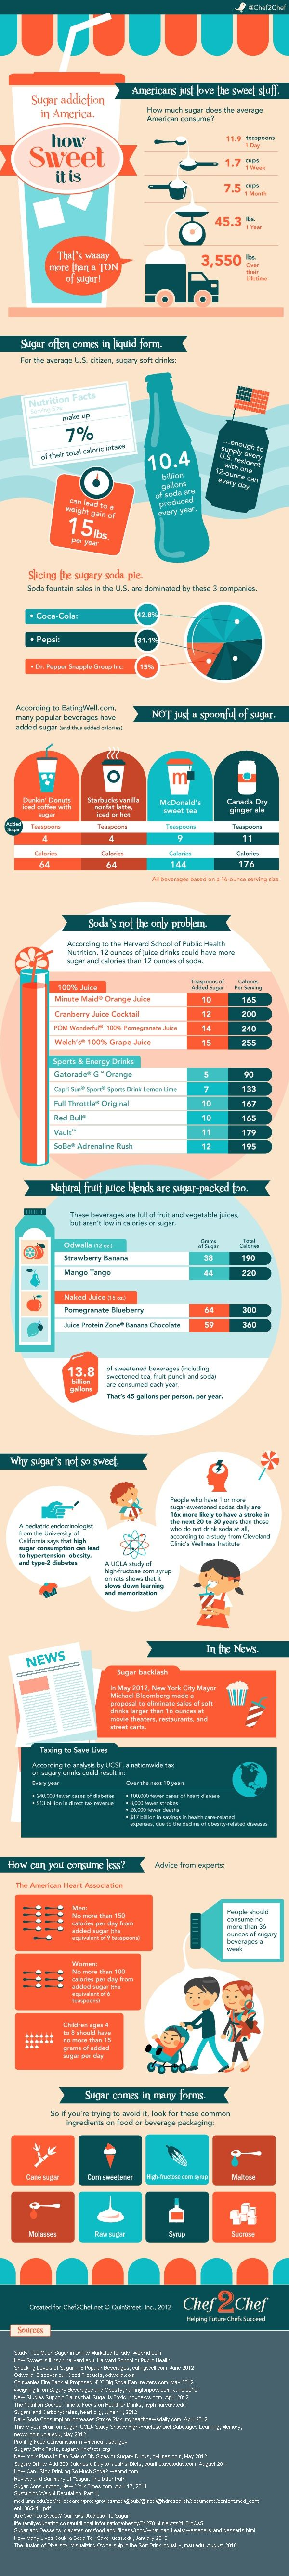 9 tsp of added sugar in McDonald's sweet tea, 10 in Minute Maid orange juice. Check out this infographic to see how much sugar you and your family may be drinking in